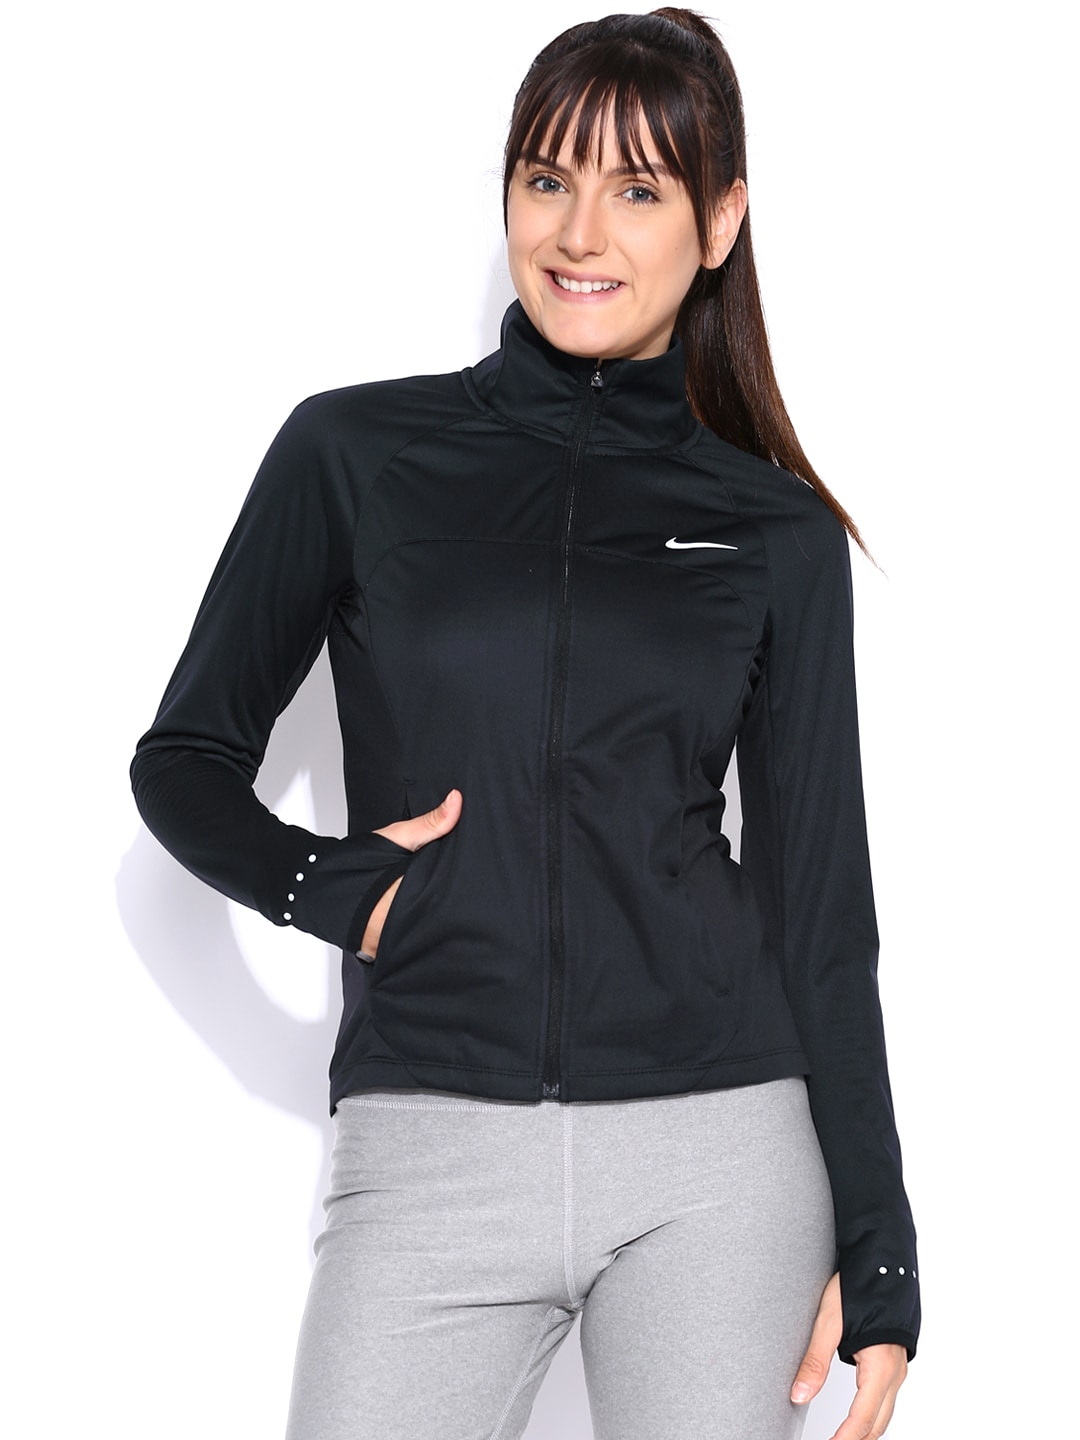 3f6c25e98a99 Nike 686878-010 Black Jacket - Best Price in India